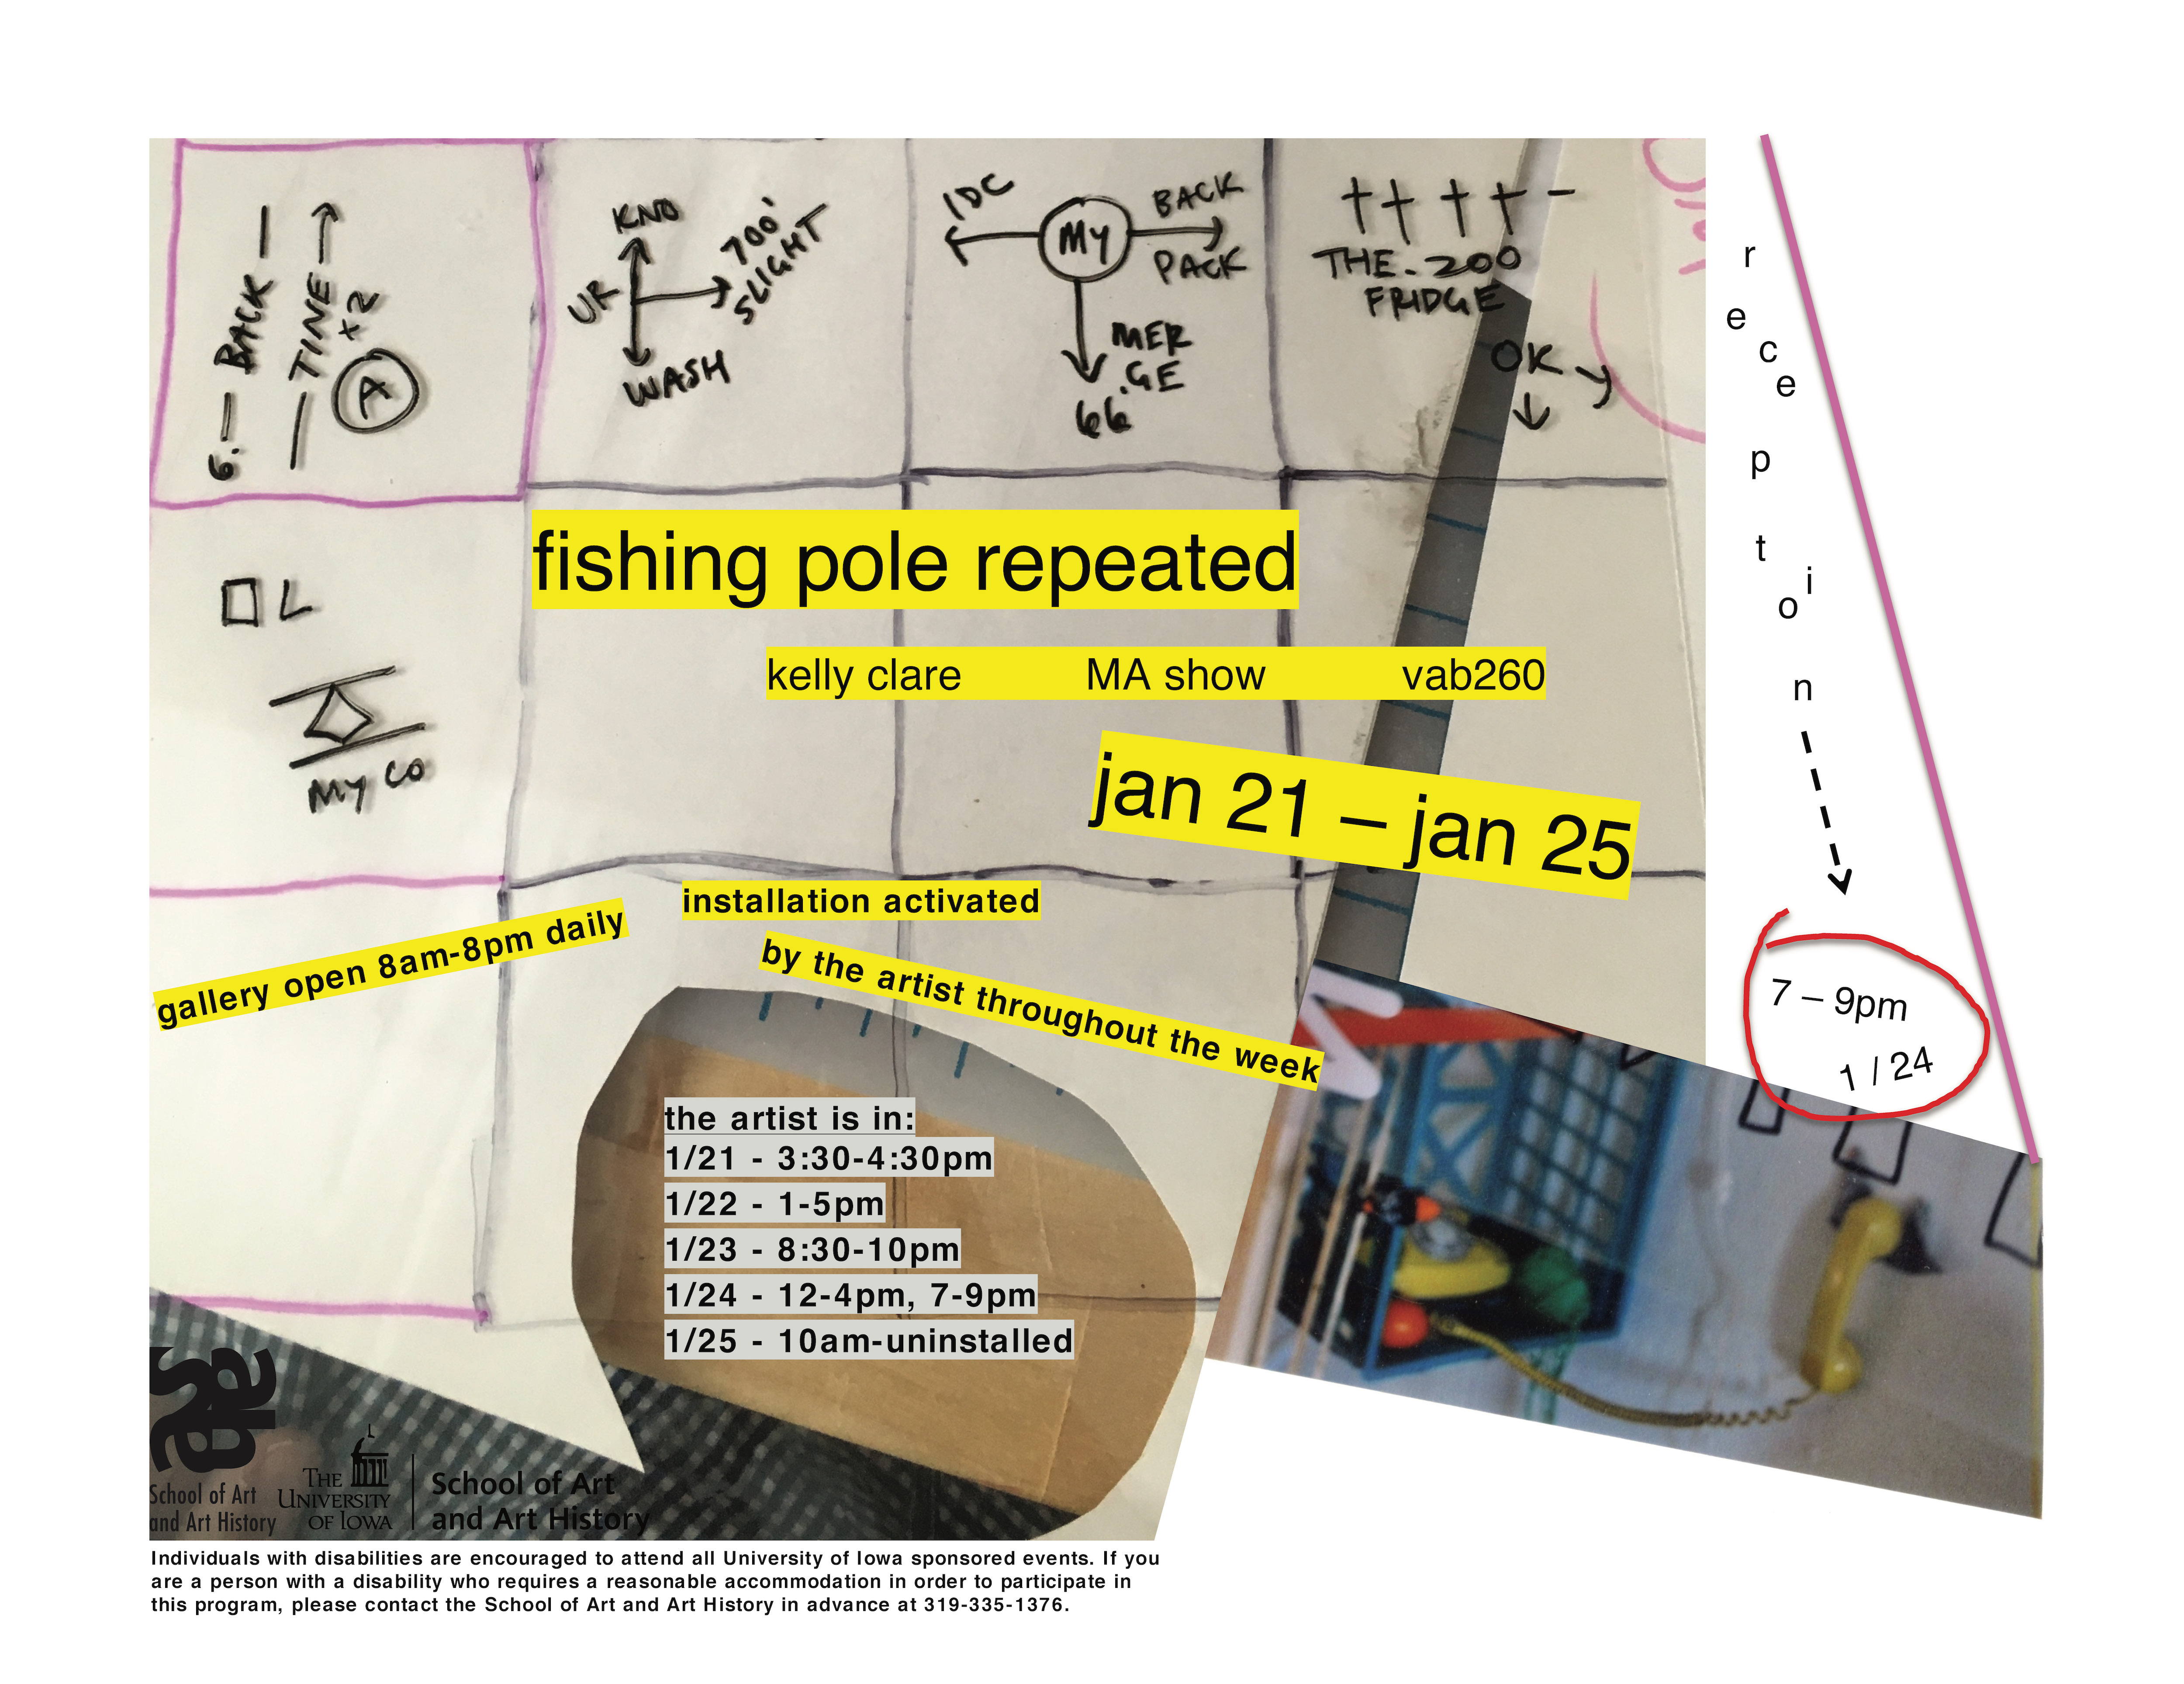 Fishing Pole Repeated, Kelly Claire, MA Show - VAB 260 1/21-1/25